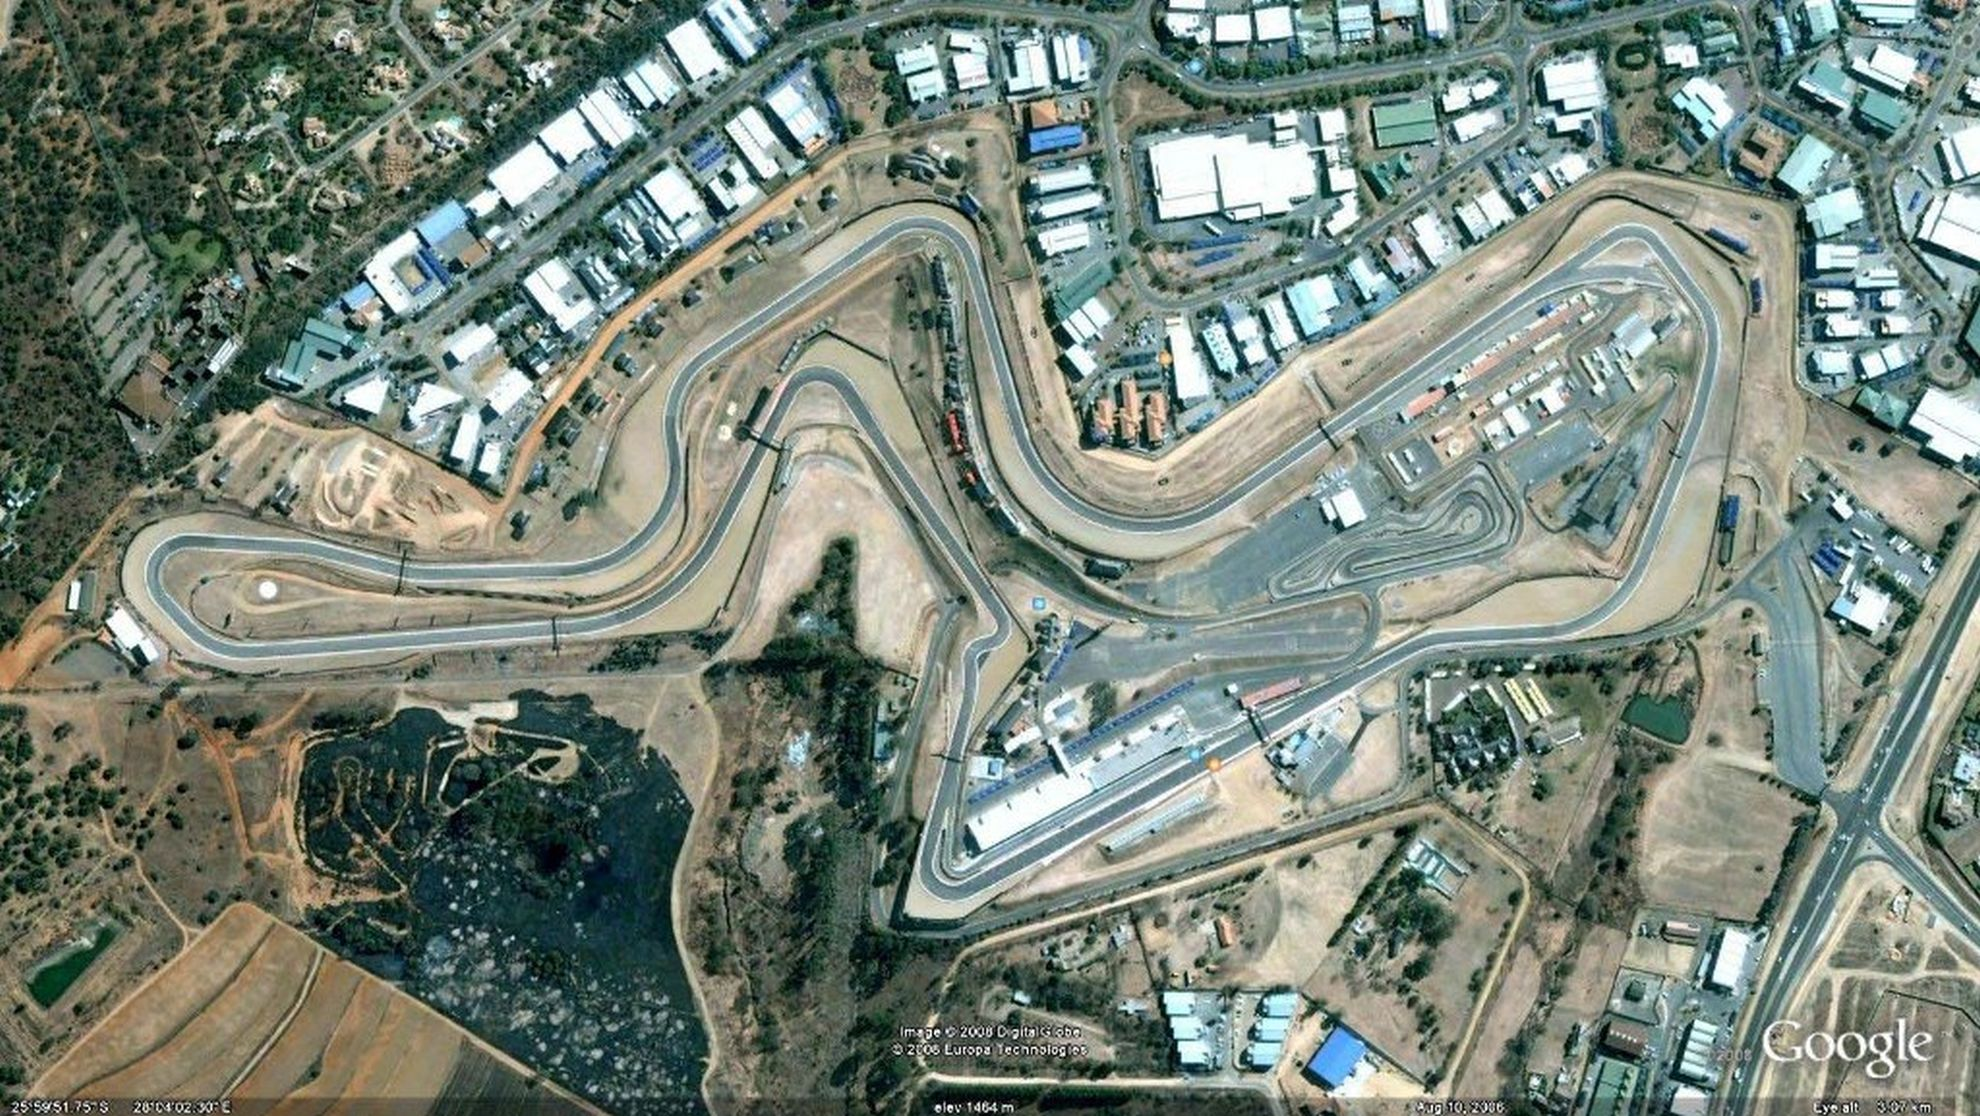 Kyalami F1 circuit South Africa